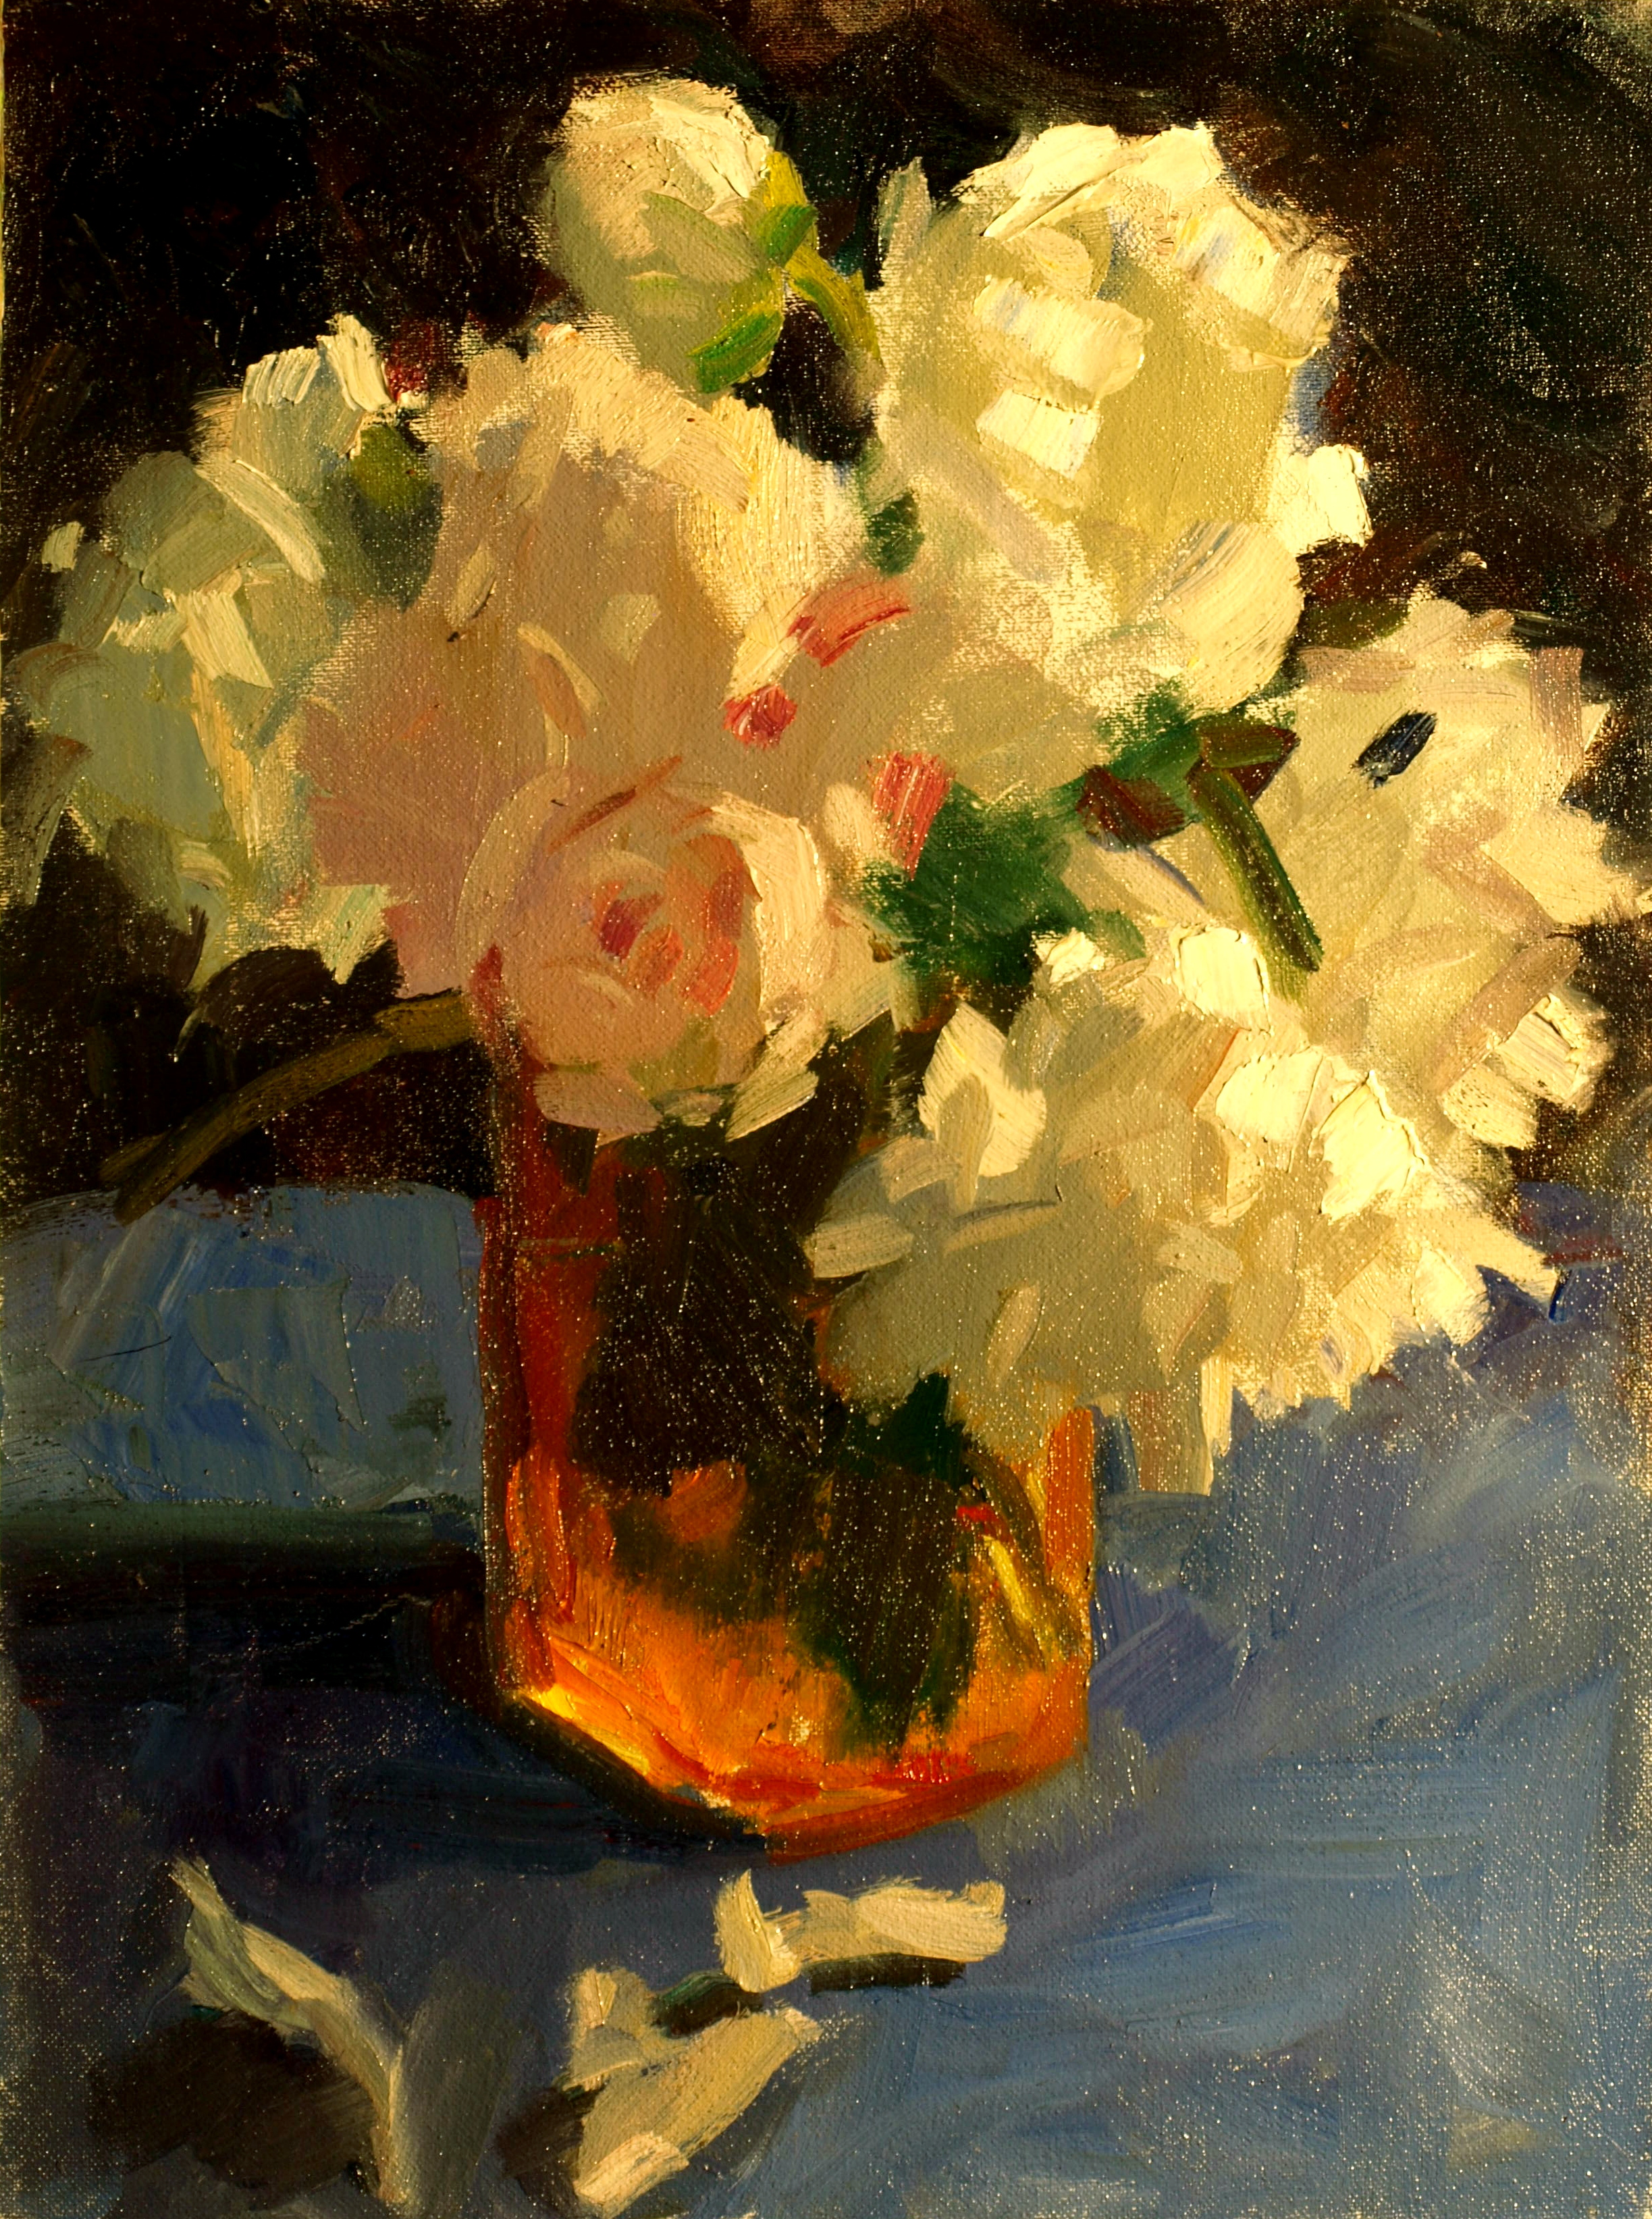 Peonies in Amber Vase, Oil on Canvas on Panel, 16 x 12 Inches, by Susan Grisell, $275